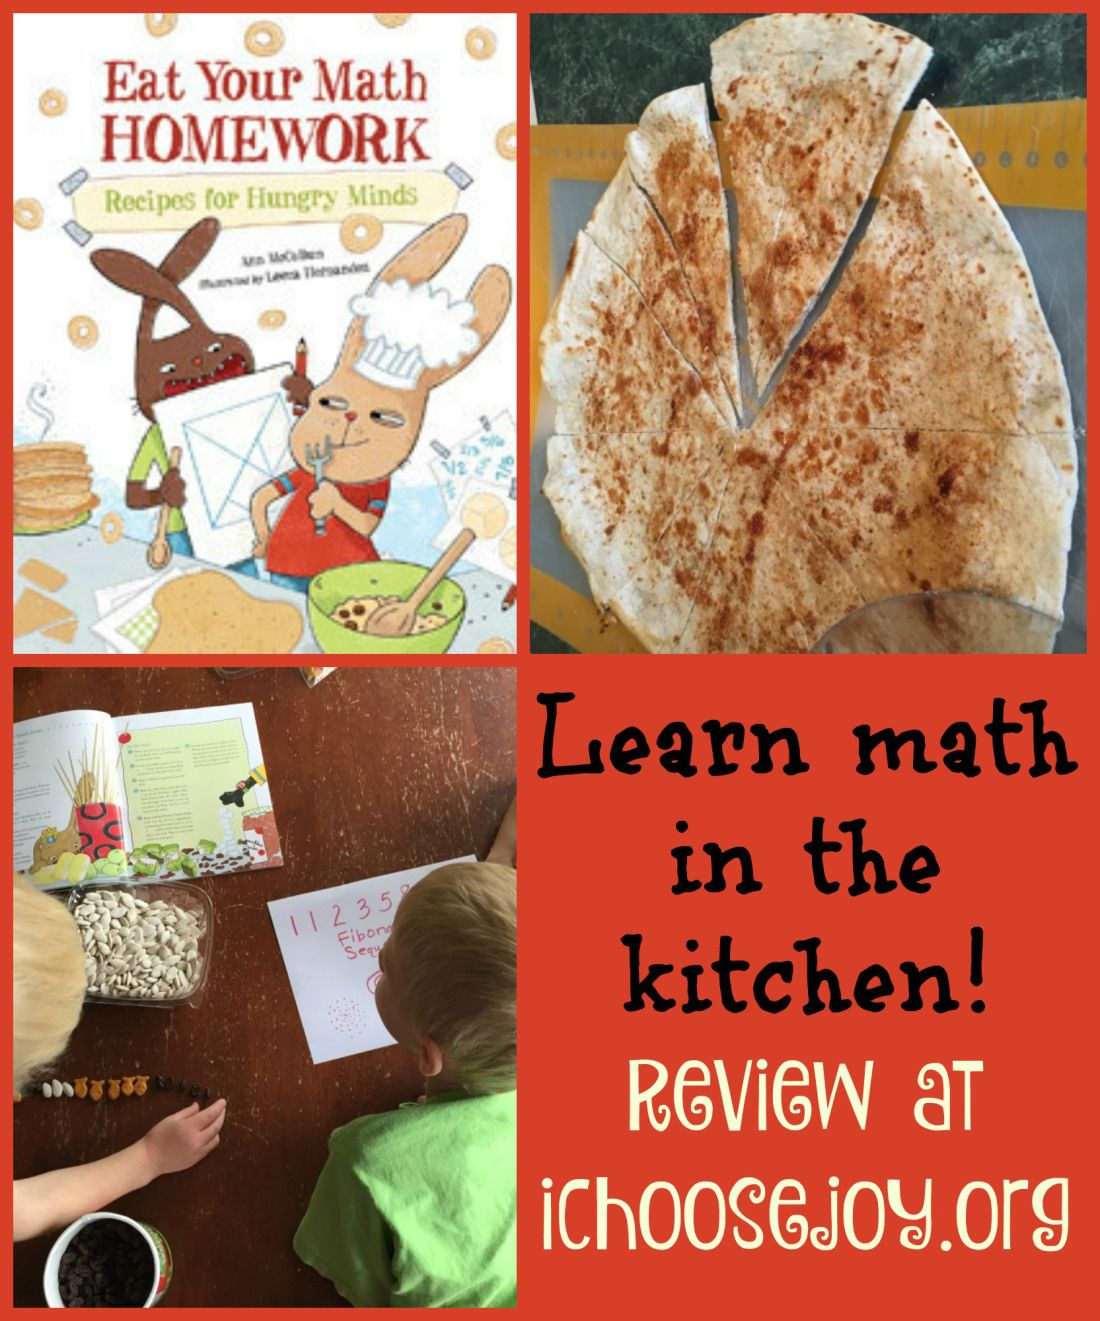 Review Eat Your Math Homework With Images